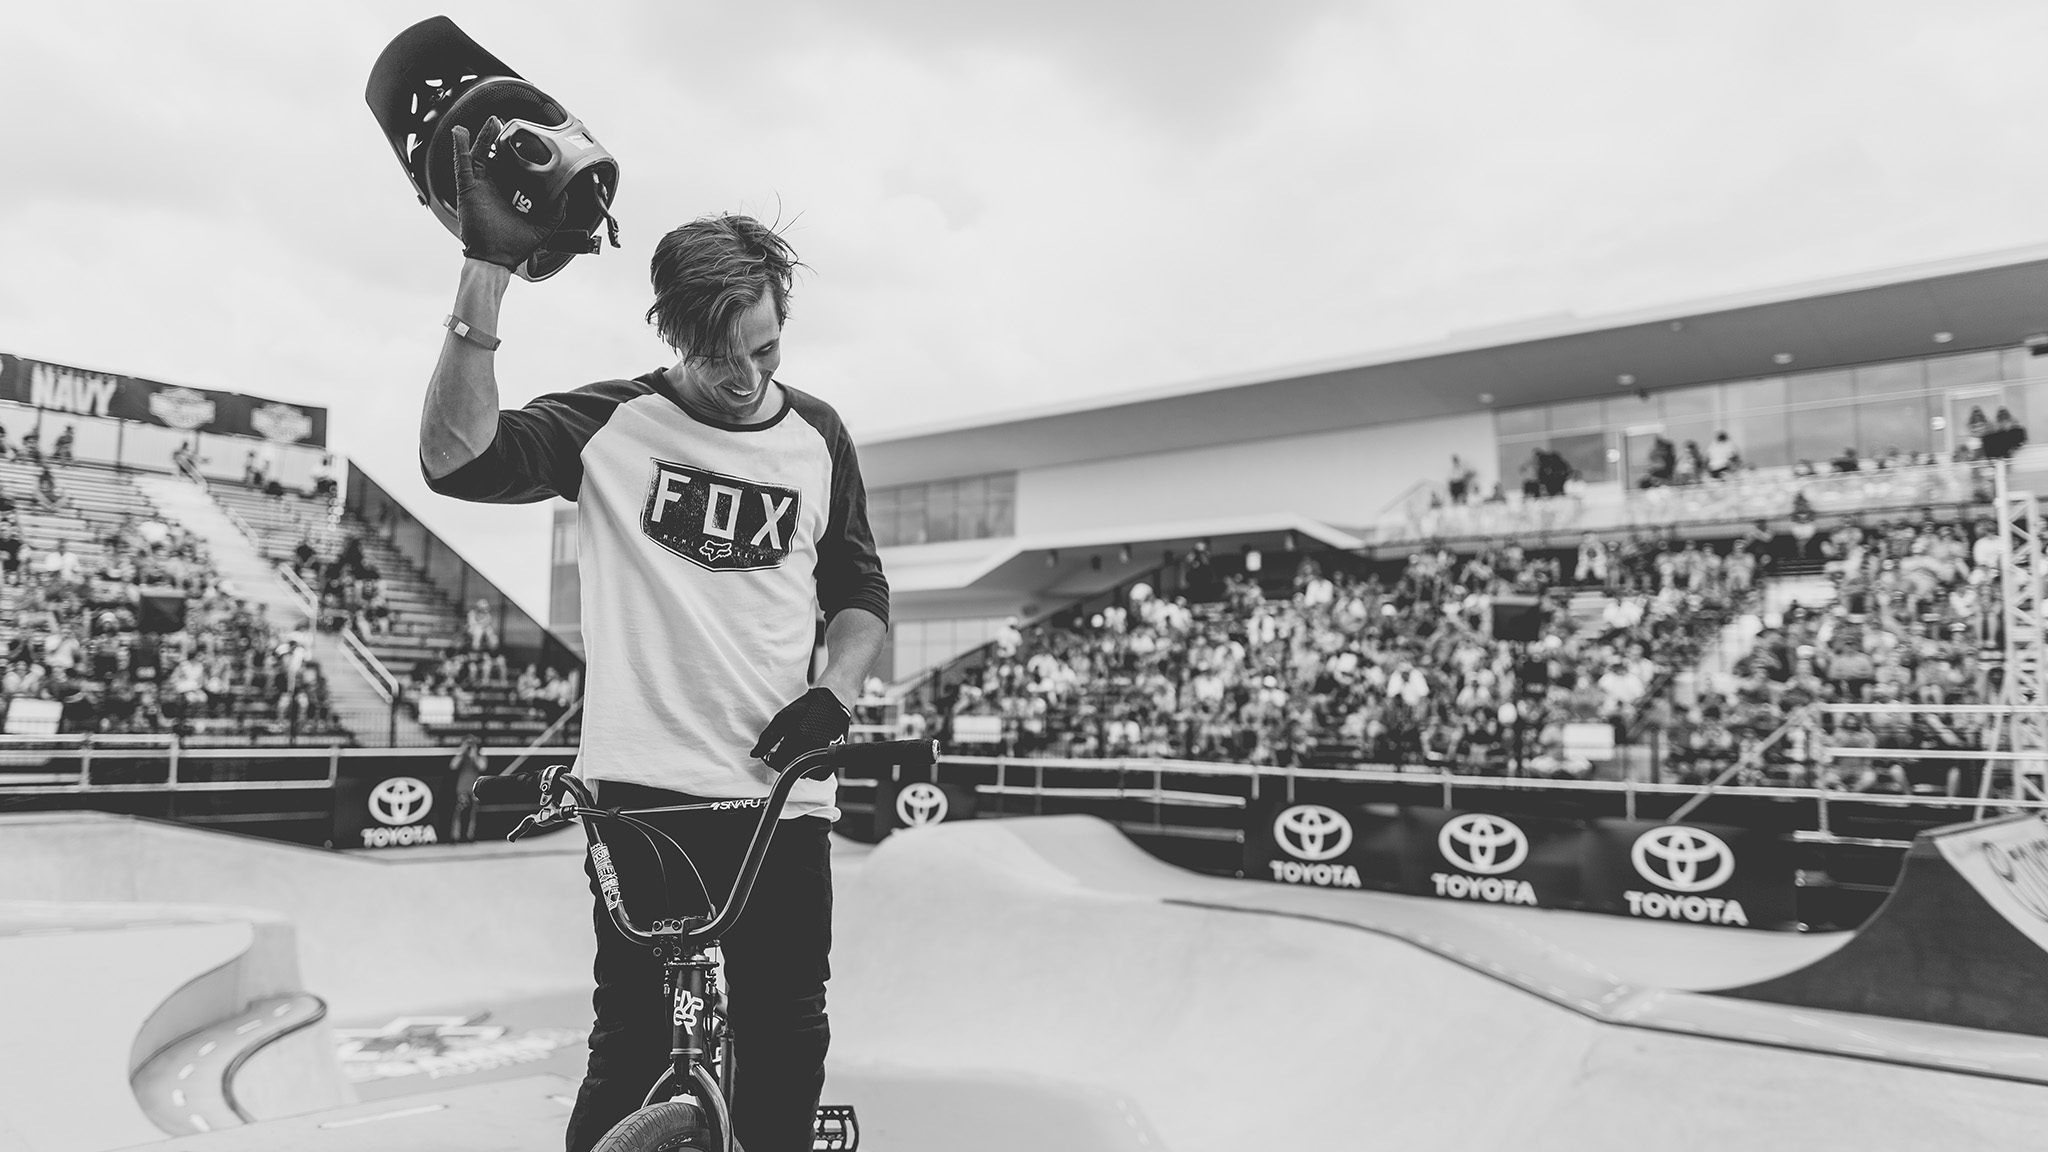 Scotty Cranmer injured